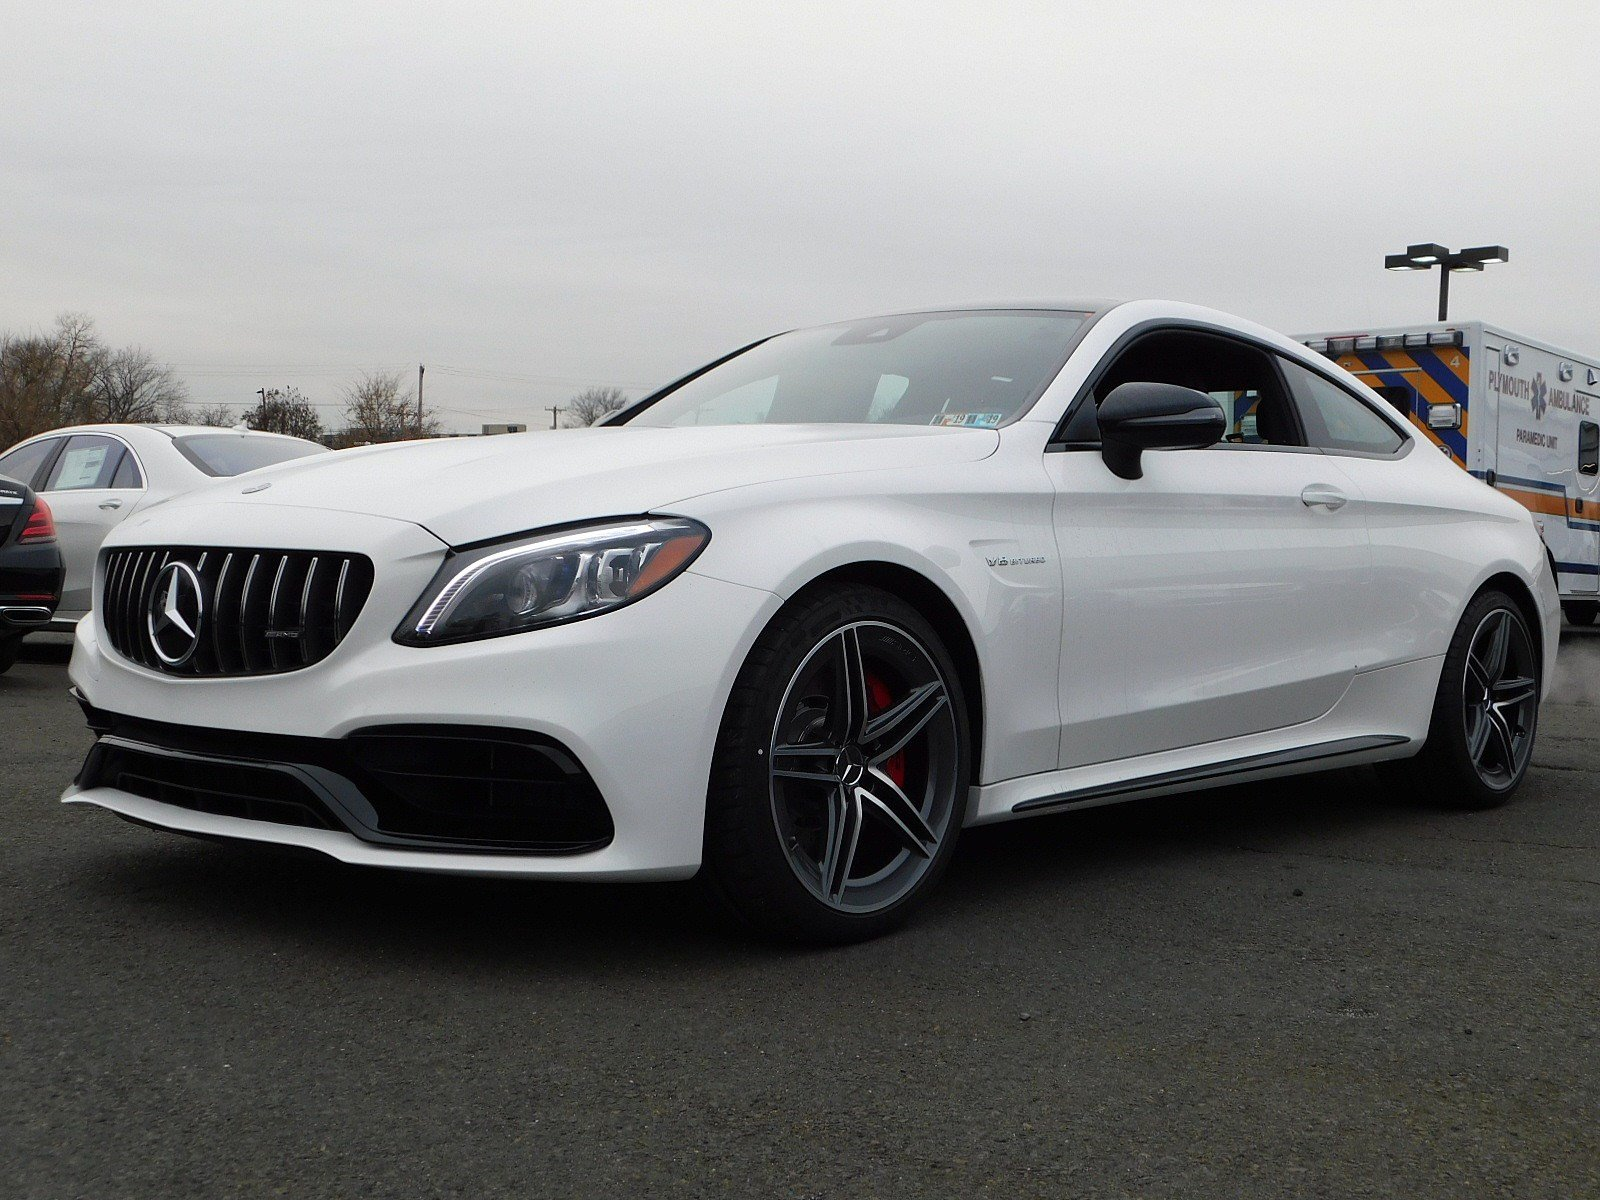 New 2019 Mercedes Benz C Class AMG C 63 S Coupe Coupe in Fort